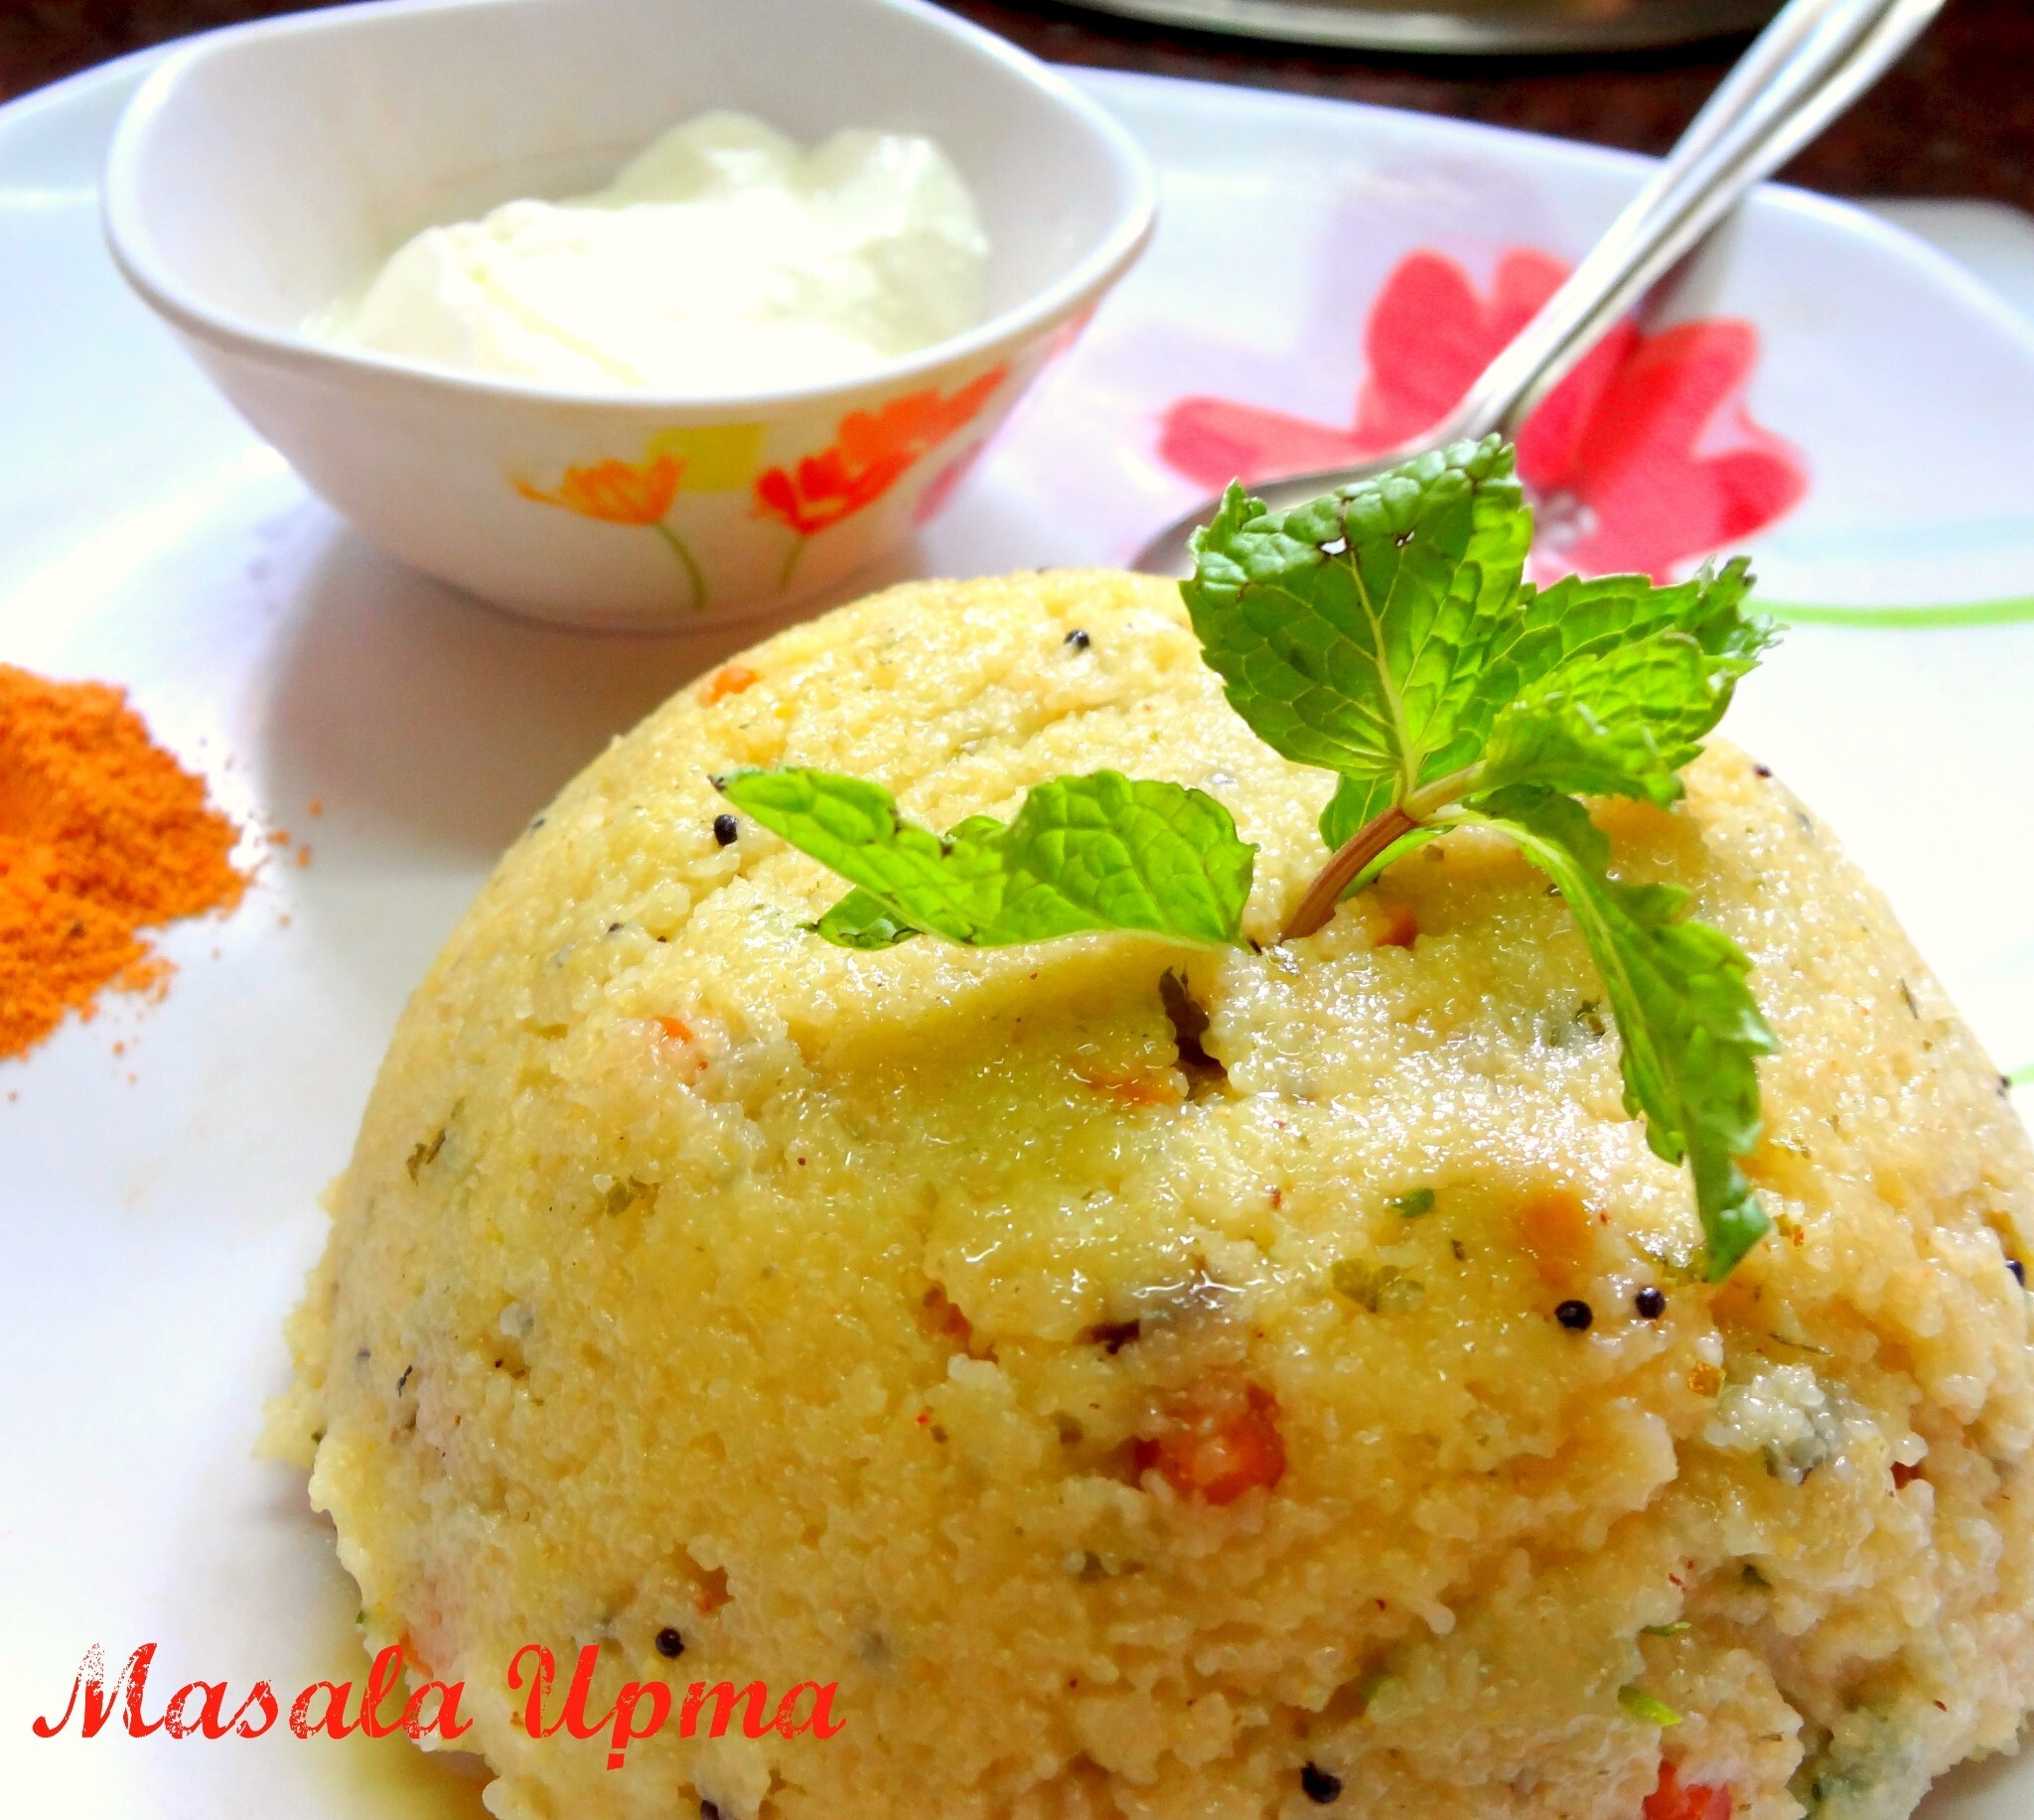 Rava Masala Upma ( Semoiline cooked with Indian spices and veggies)